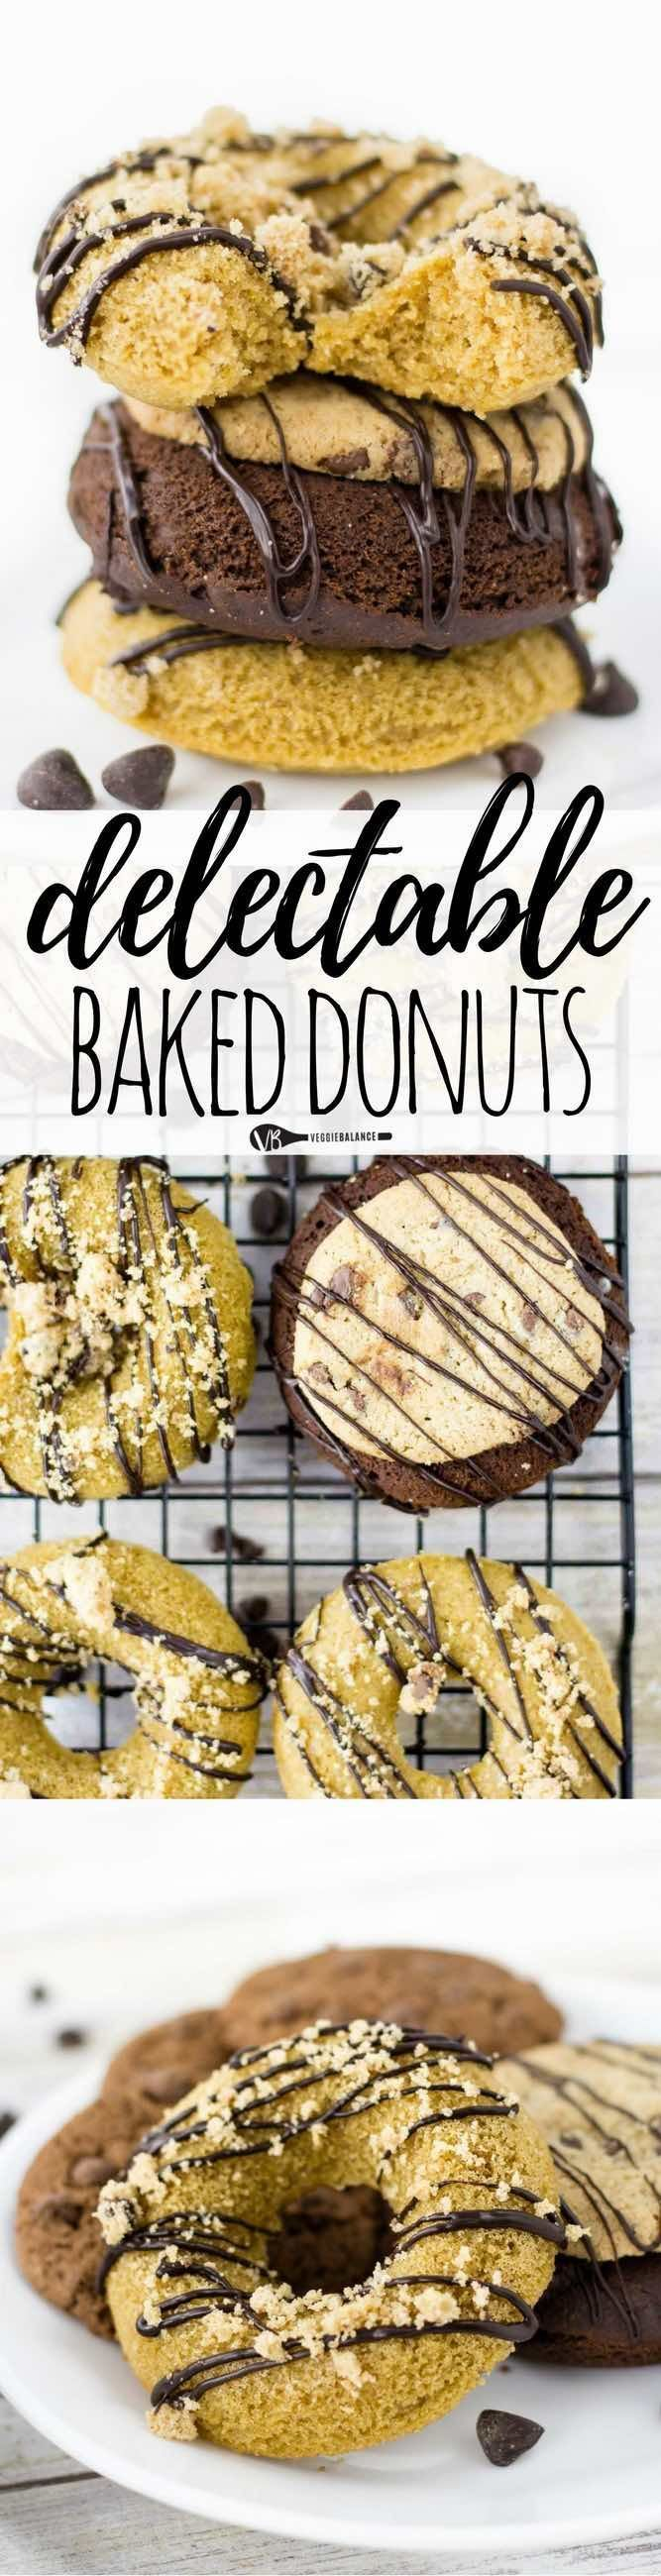 Gluten Free Donuts recipe made in a flash and no frying required. Make them two ways, classic or decadent chocolate. Both are a real treat you just have to have for breakfast one of these mornings. (Gluten Free, Dairy Free, Egg-free)